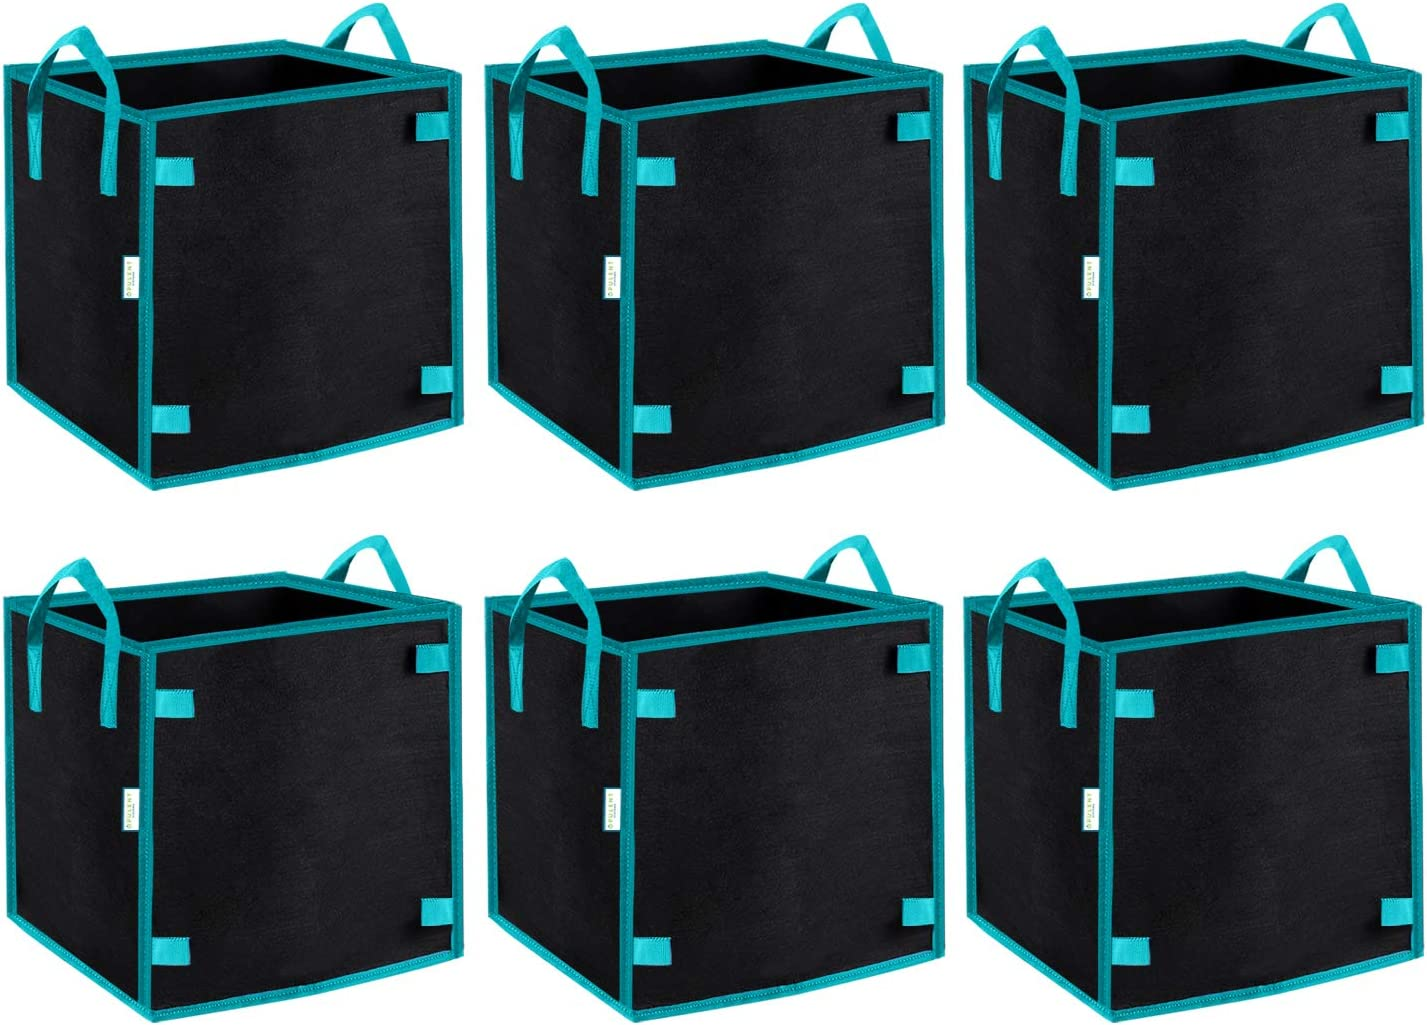 OPULENT SYSTEMS 6-Pack Heavy Duty Aeration Fabric Square Grow Bags Thickened Nonwoven Fabric Containers for Potato/Plant Pots with Handles (Black) (7 Gallon)